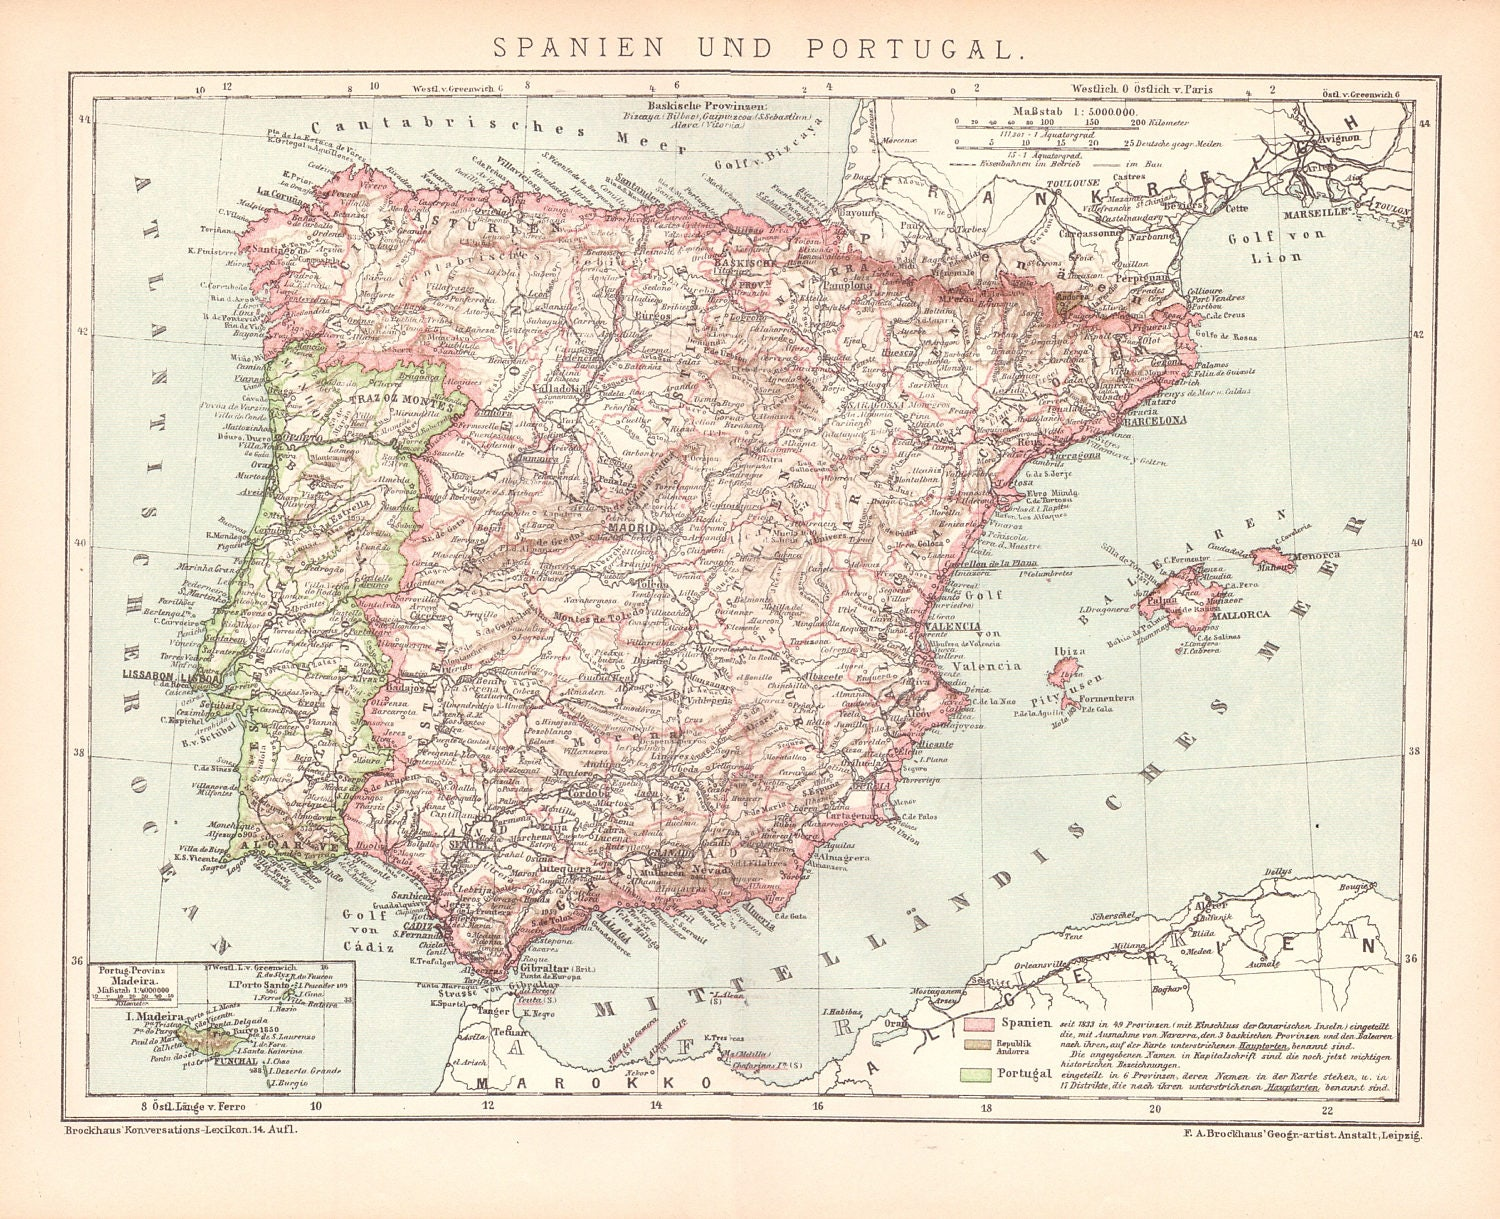 Map Of Portugal And Spain.Antique Map Of Spain And Portugal From 1890 Spain Portugal Etsy